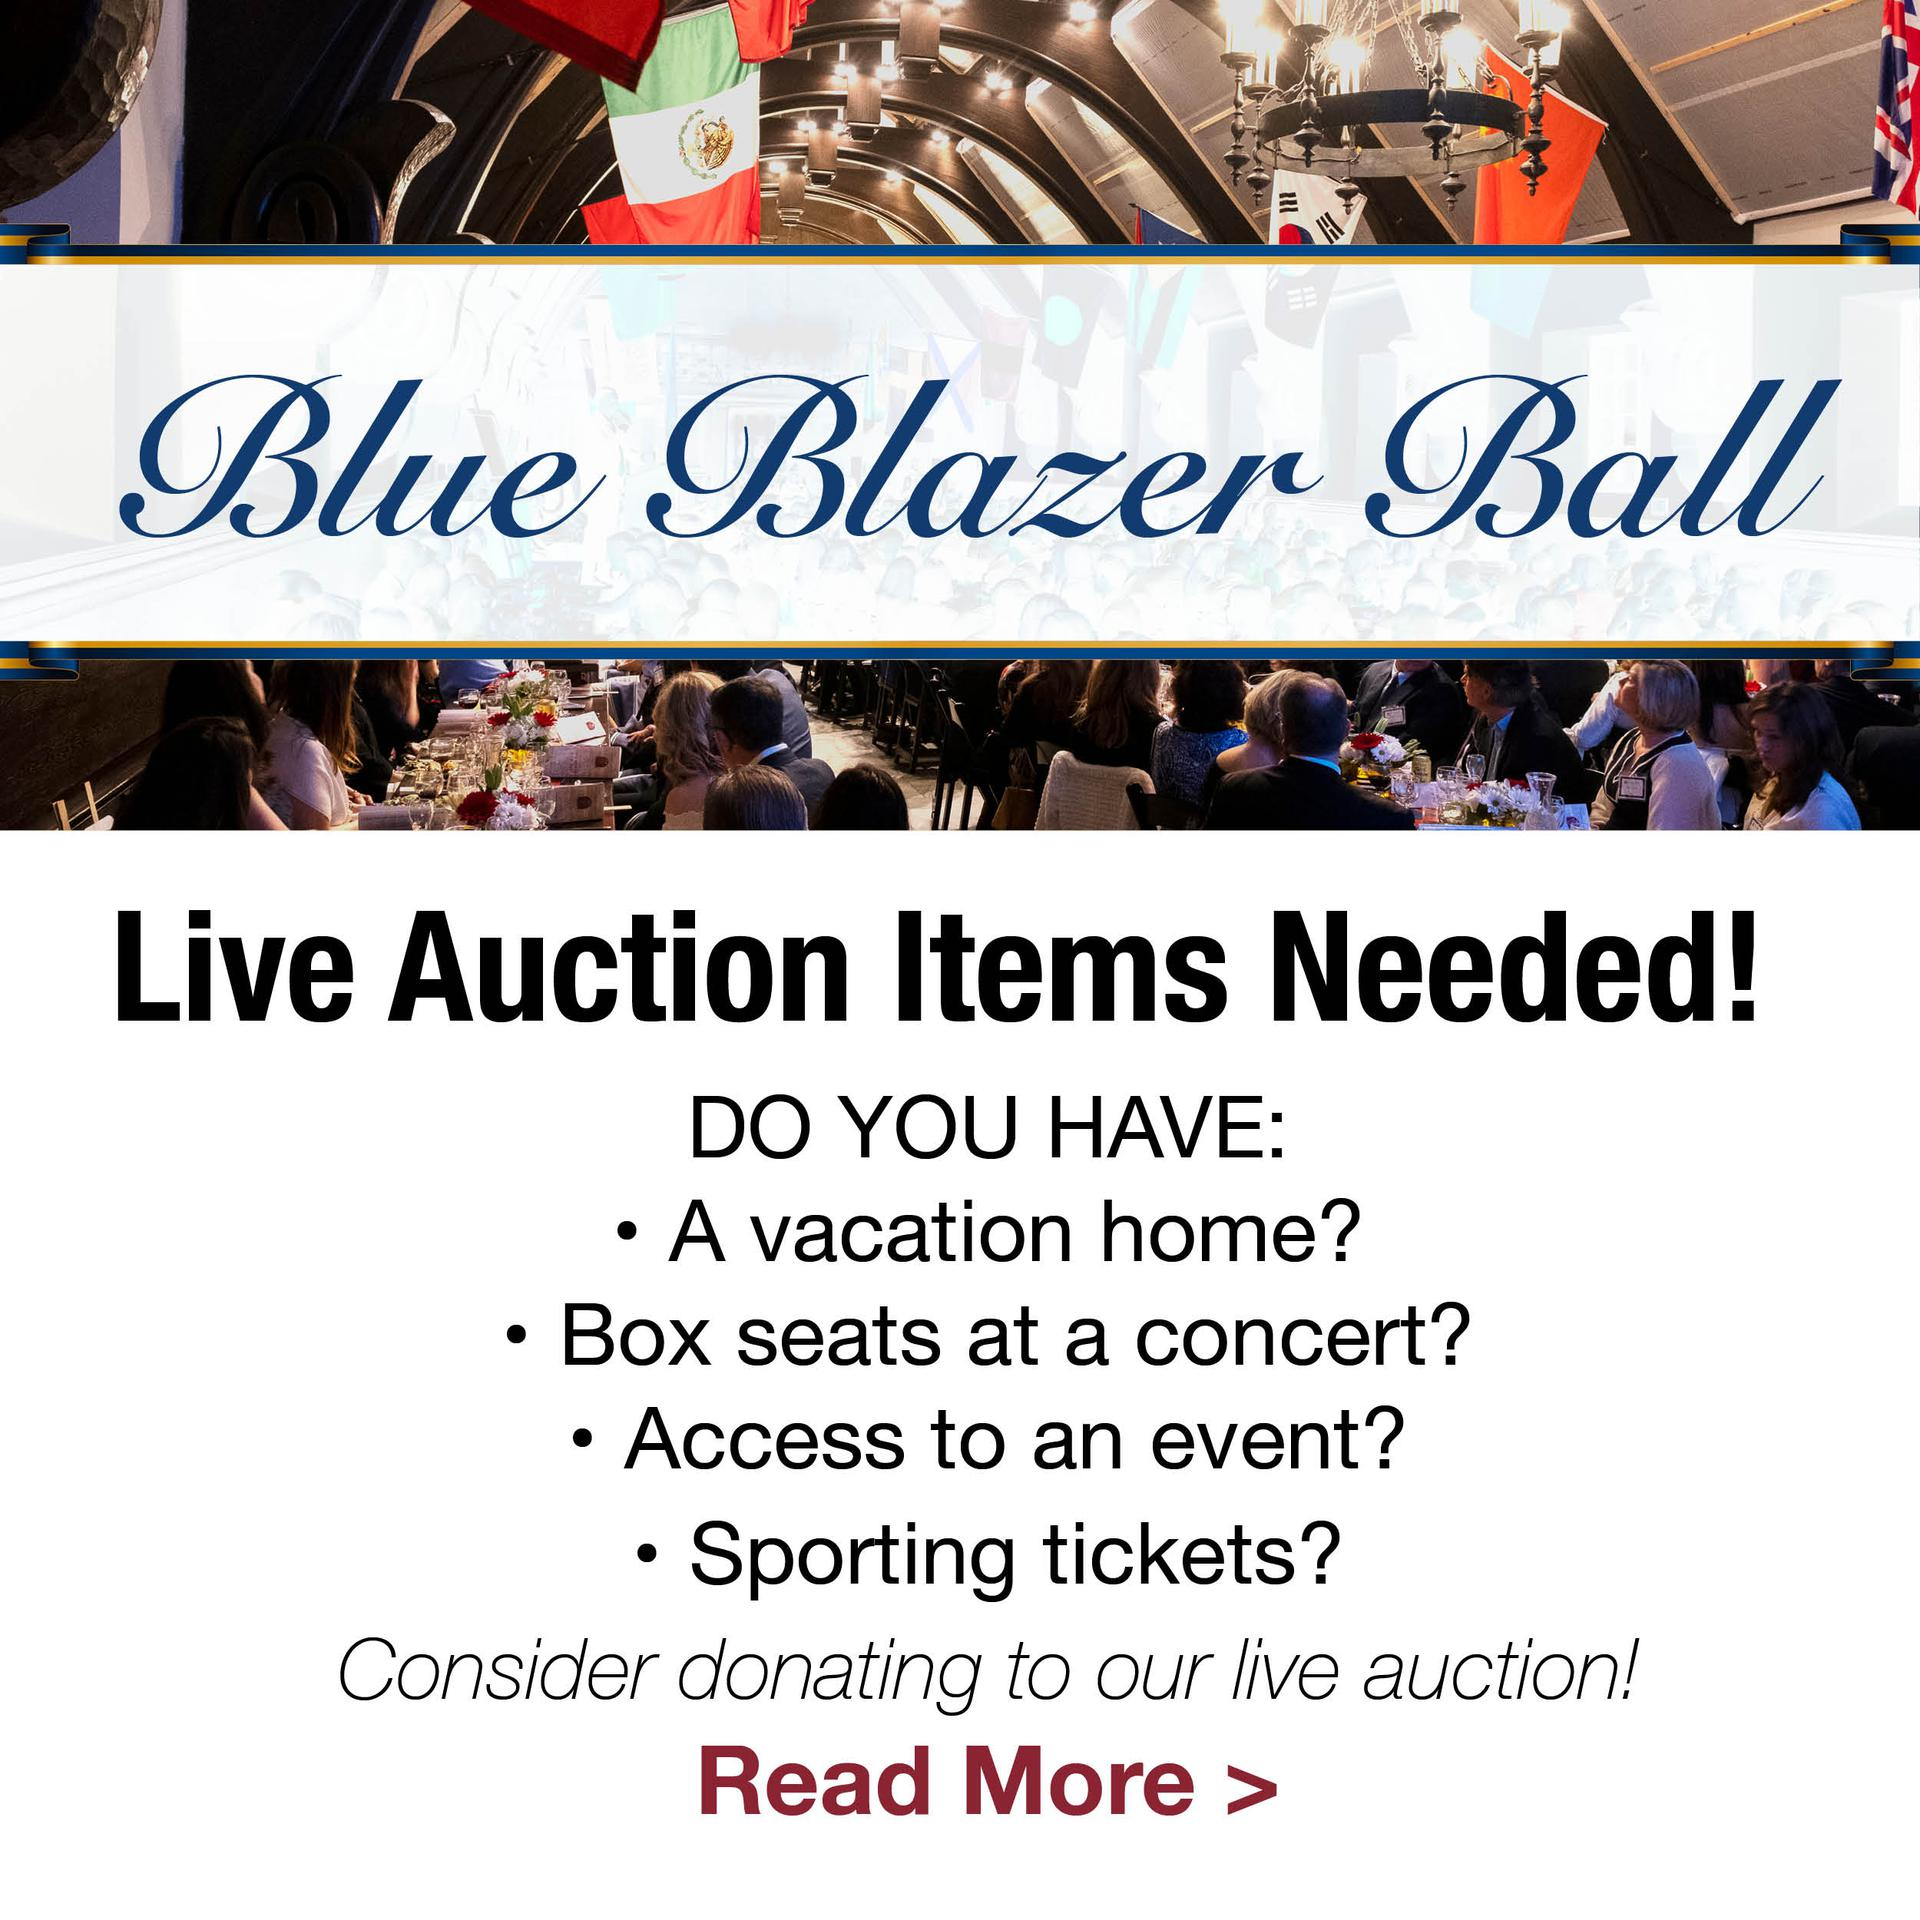 Blue Blazer Ball auction items